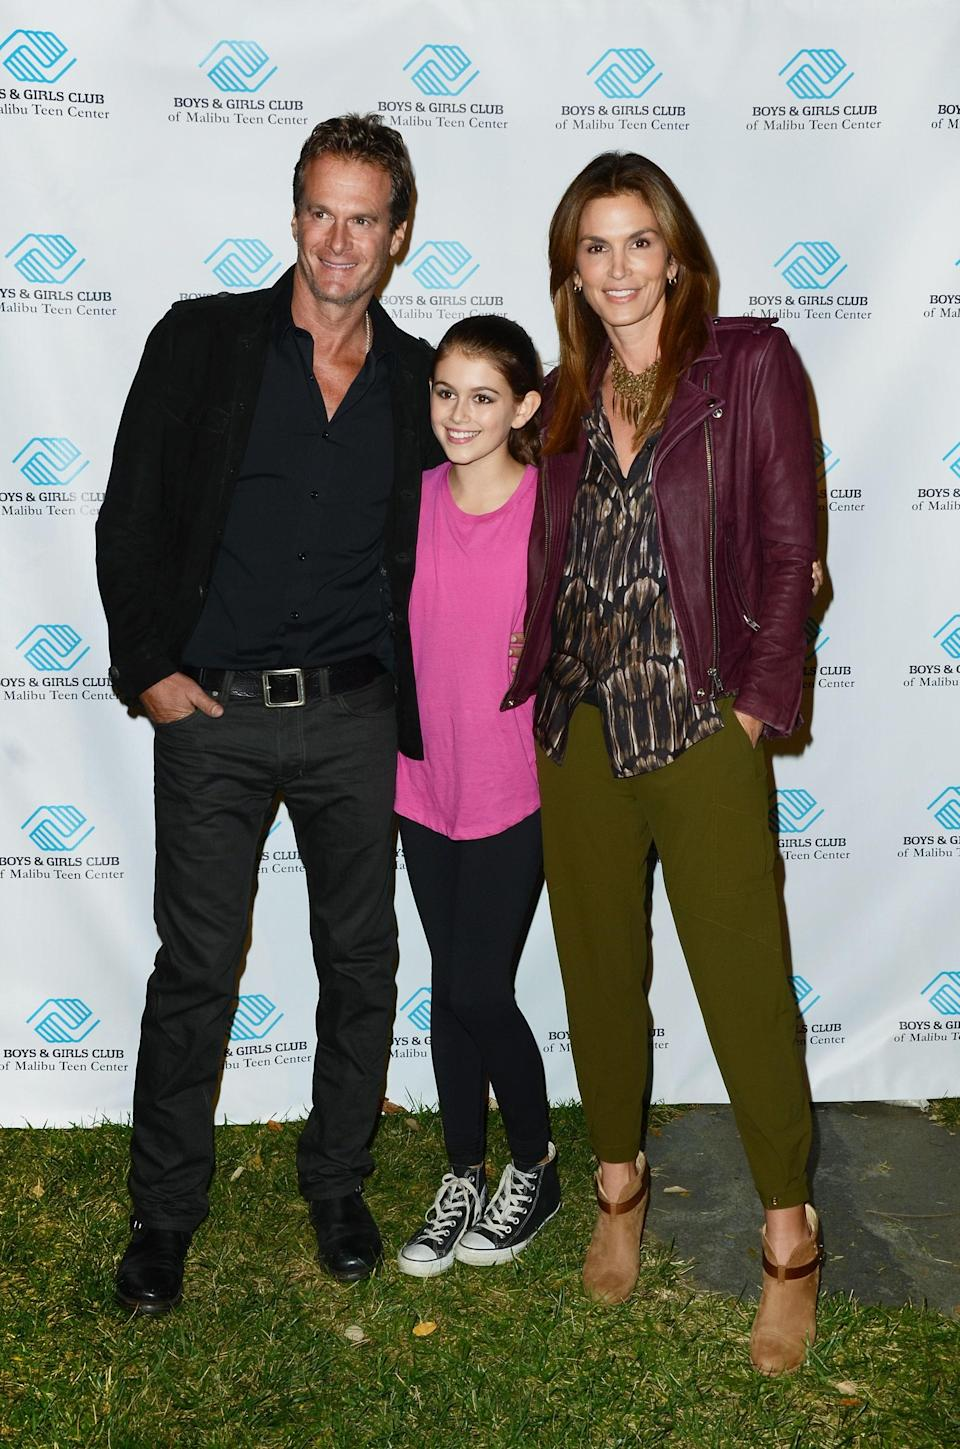 At a fundraiser with both her parents in 2013, Kaia kept it cool and casual in a fuschia top, black jeans, and her trusty, classic Converse high tops.